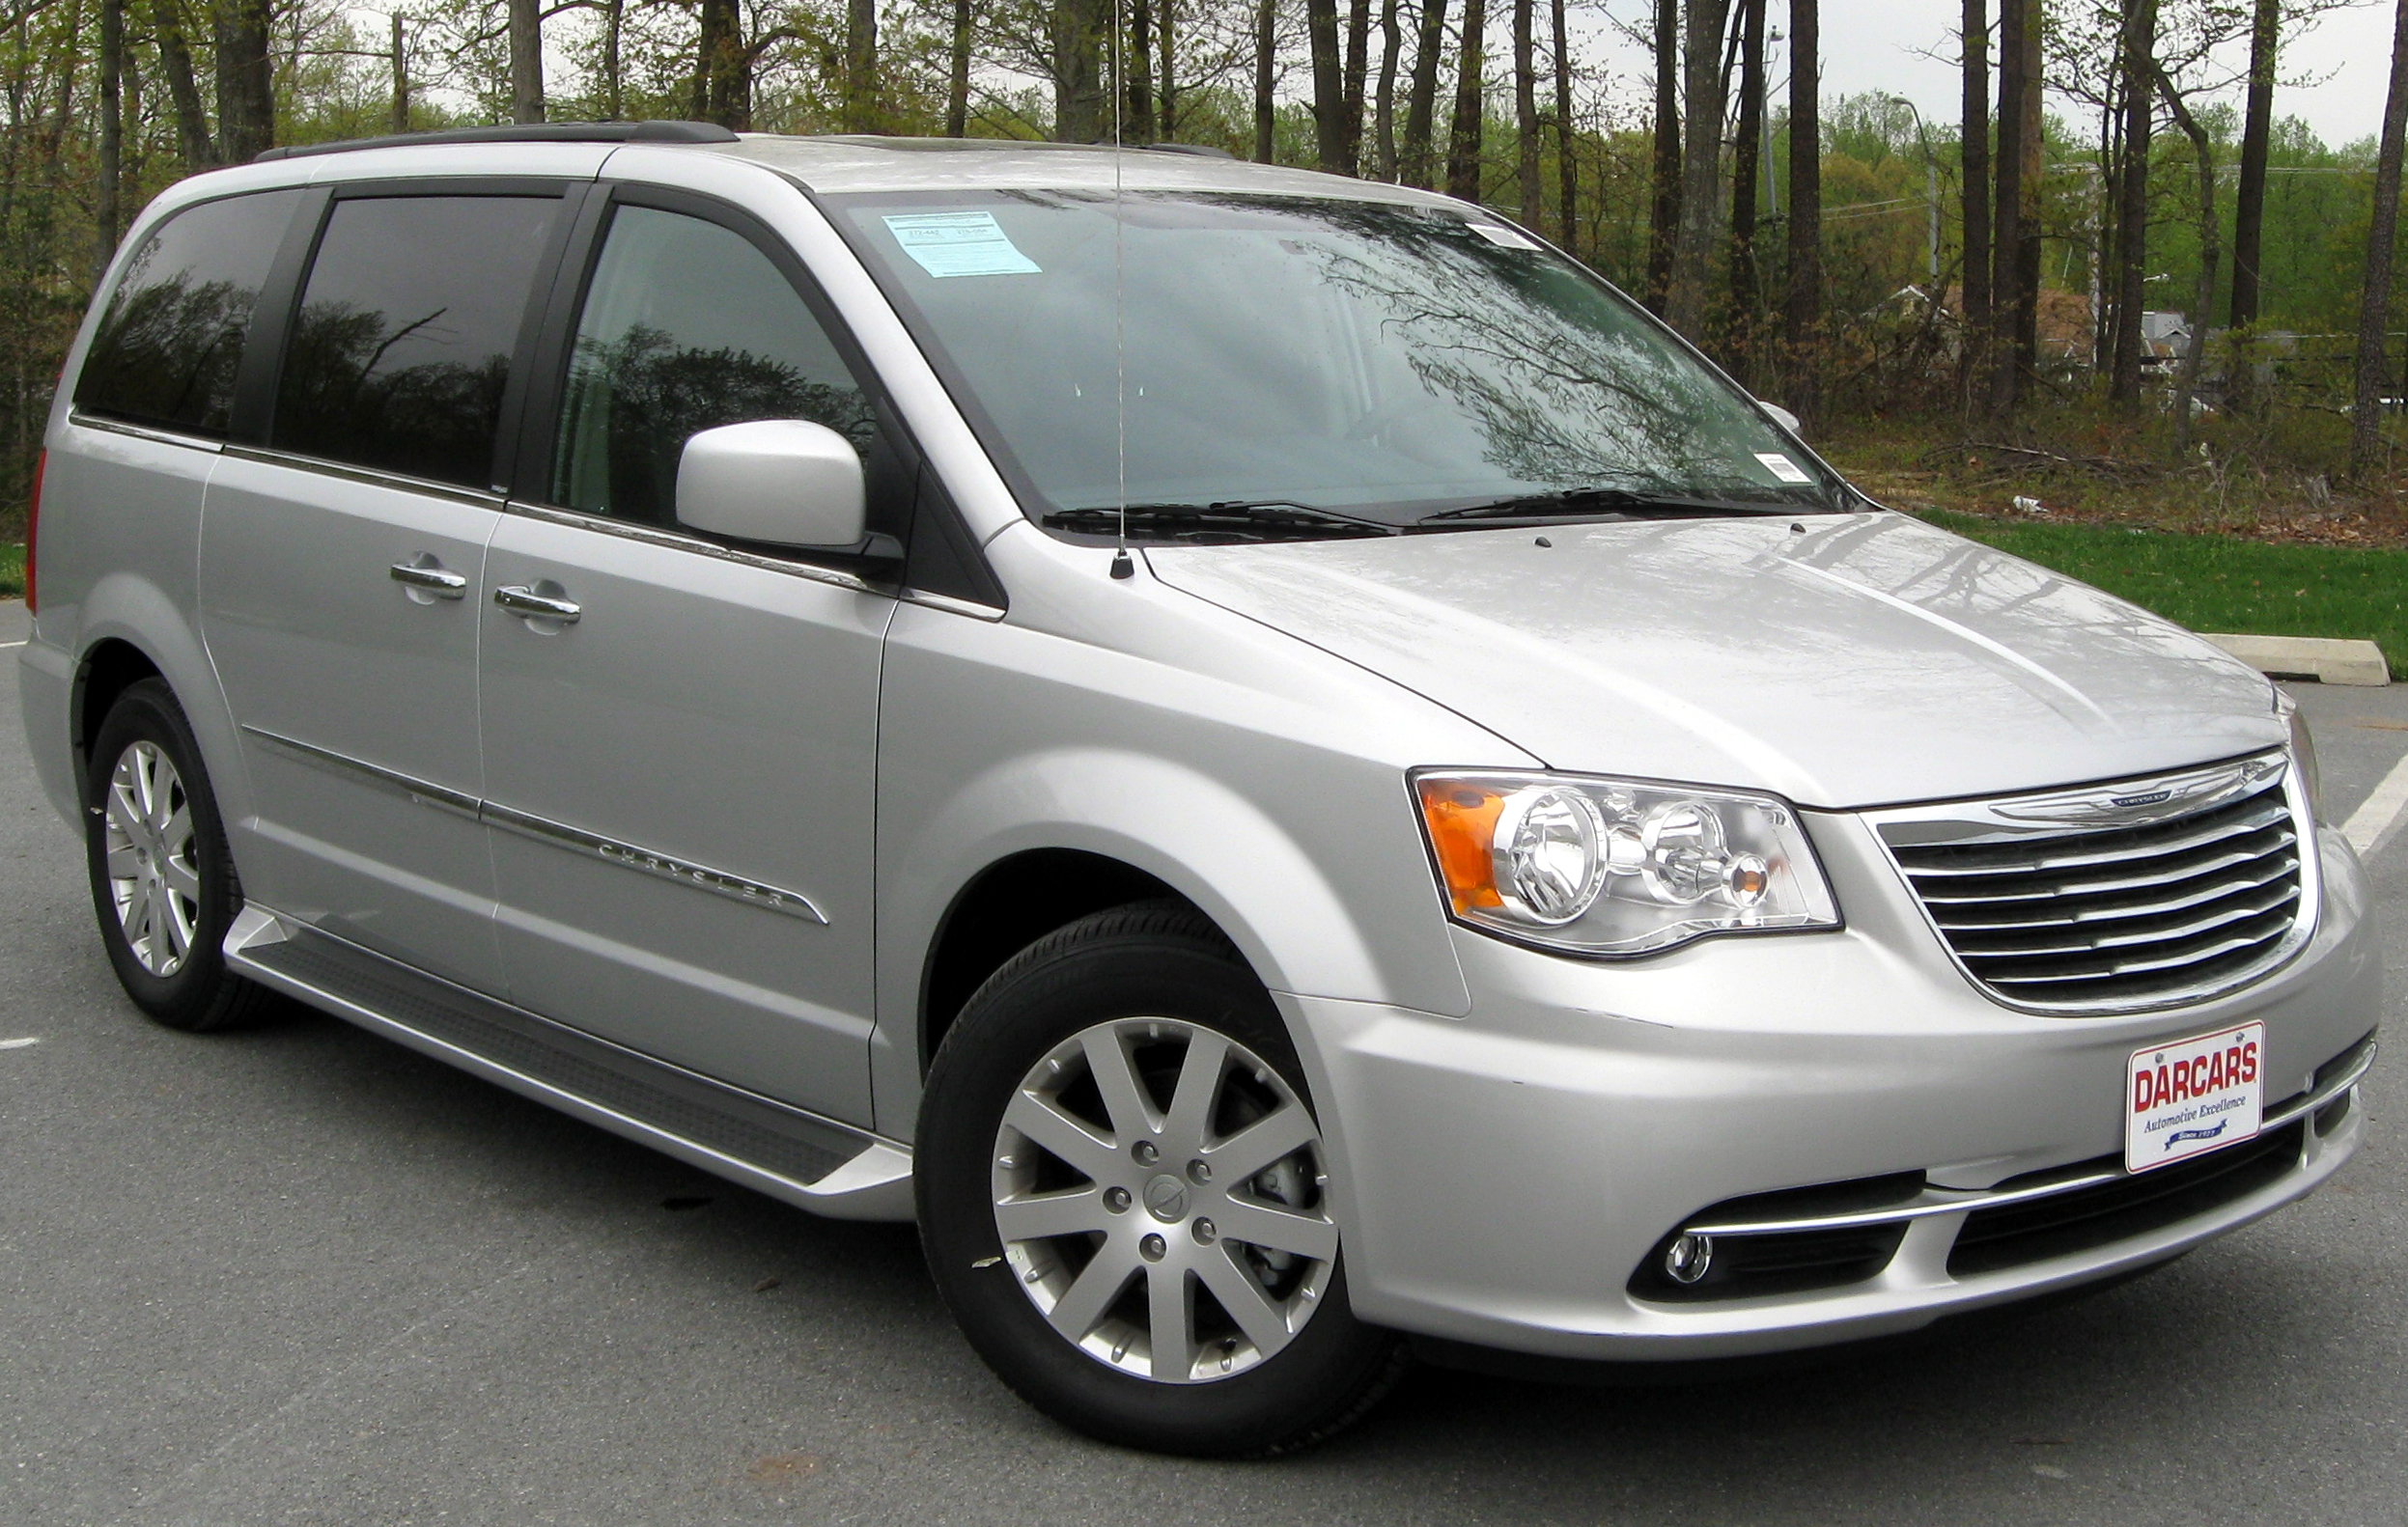 Cars chrysler town & country #1